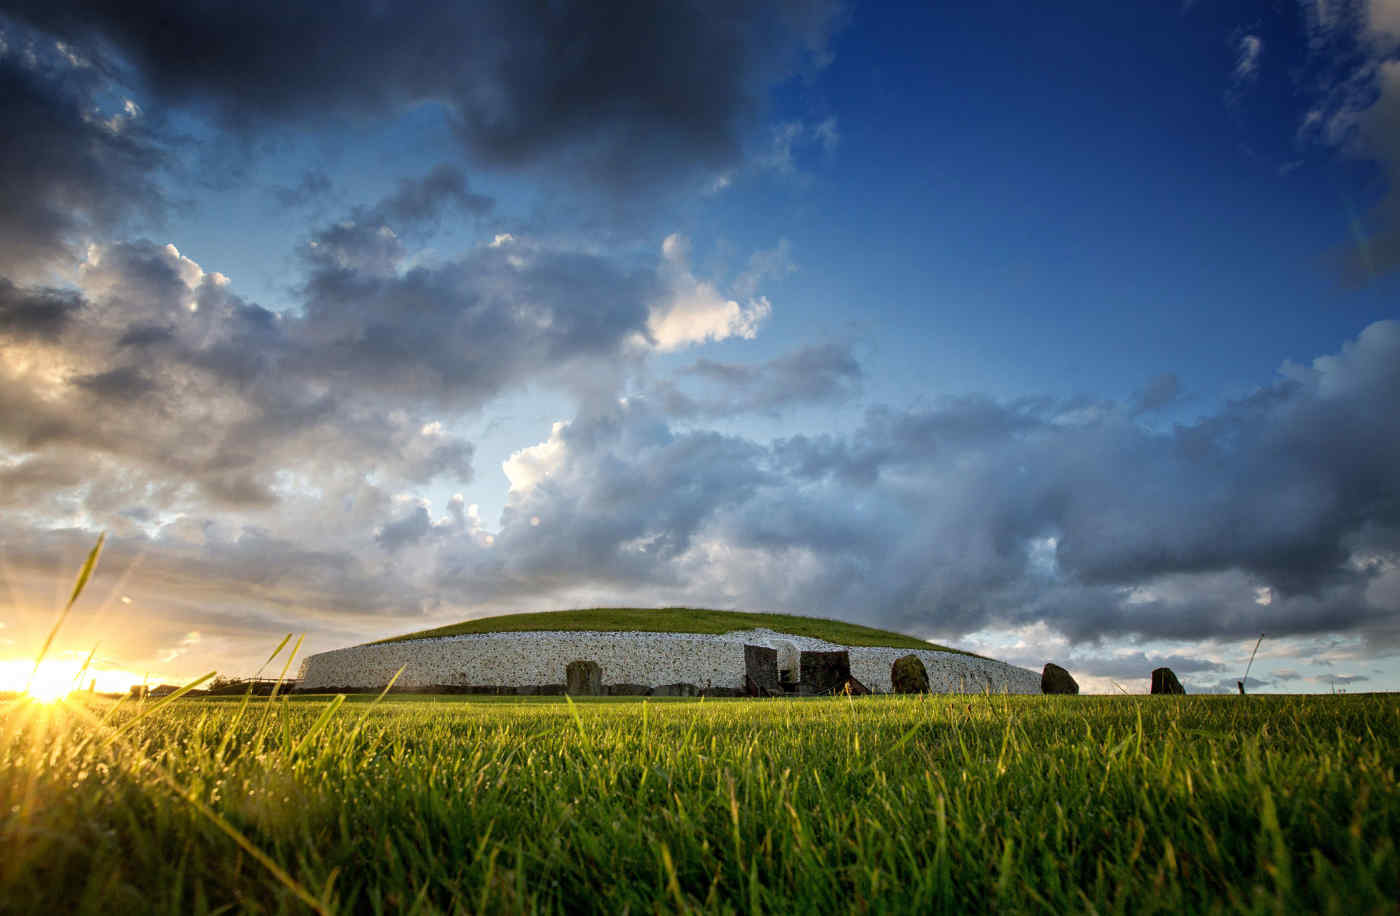 Newgrange in County Meath, Ireland